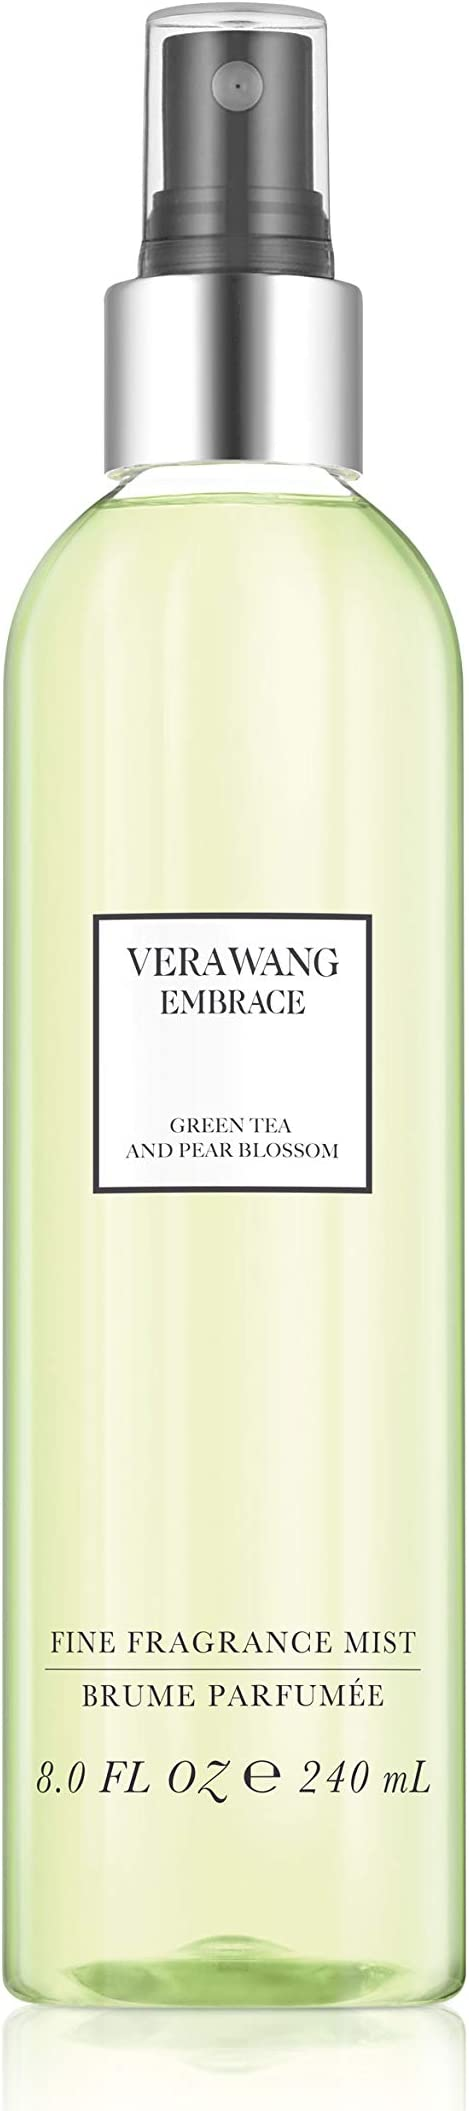 Vera Wang Embrace Body Mist Spray for Women